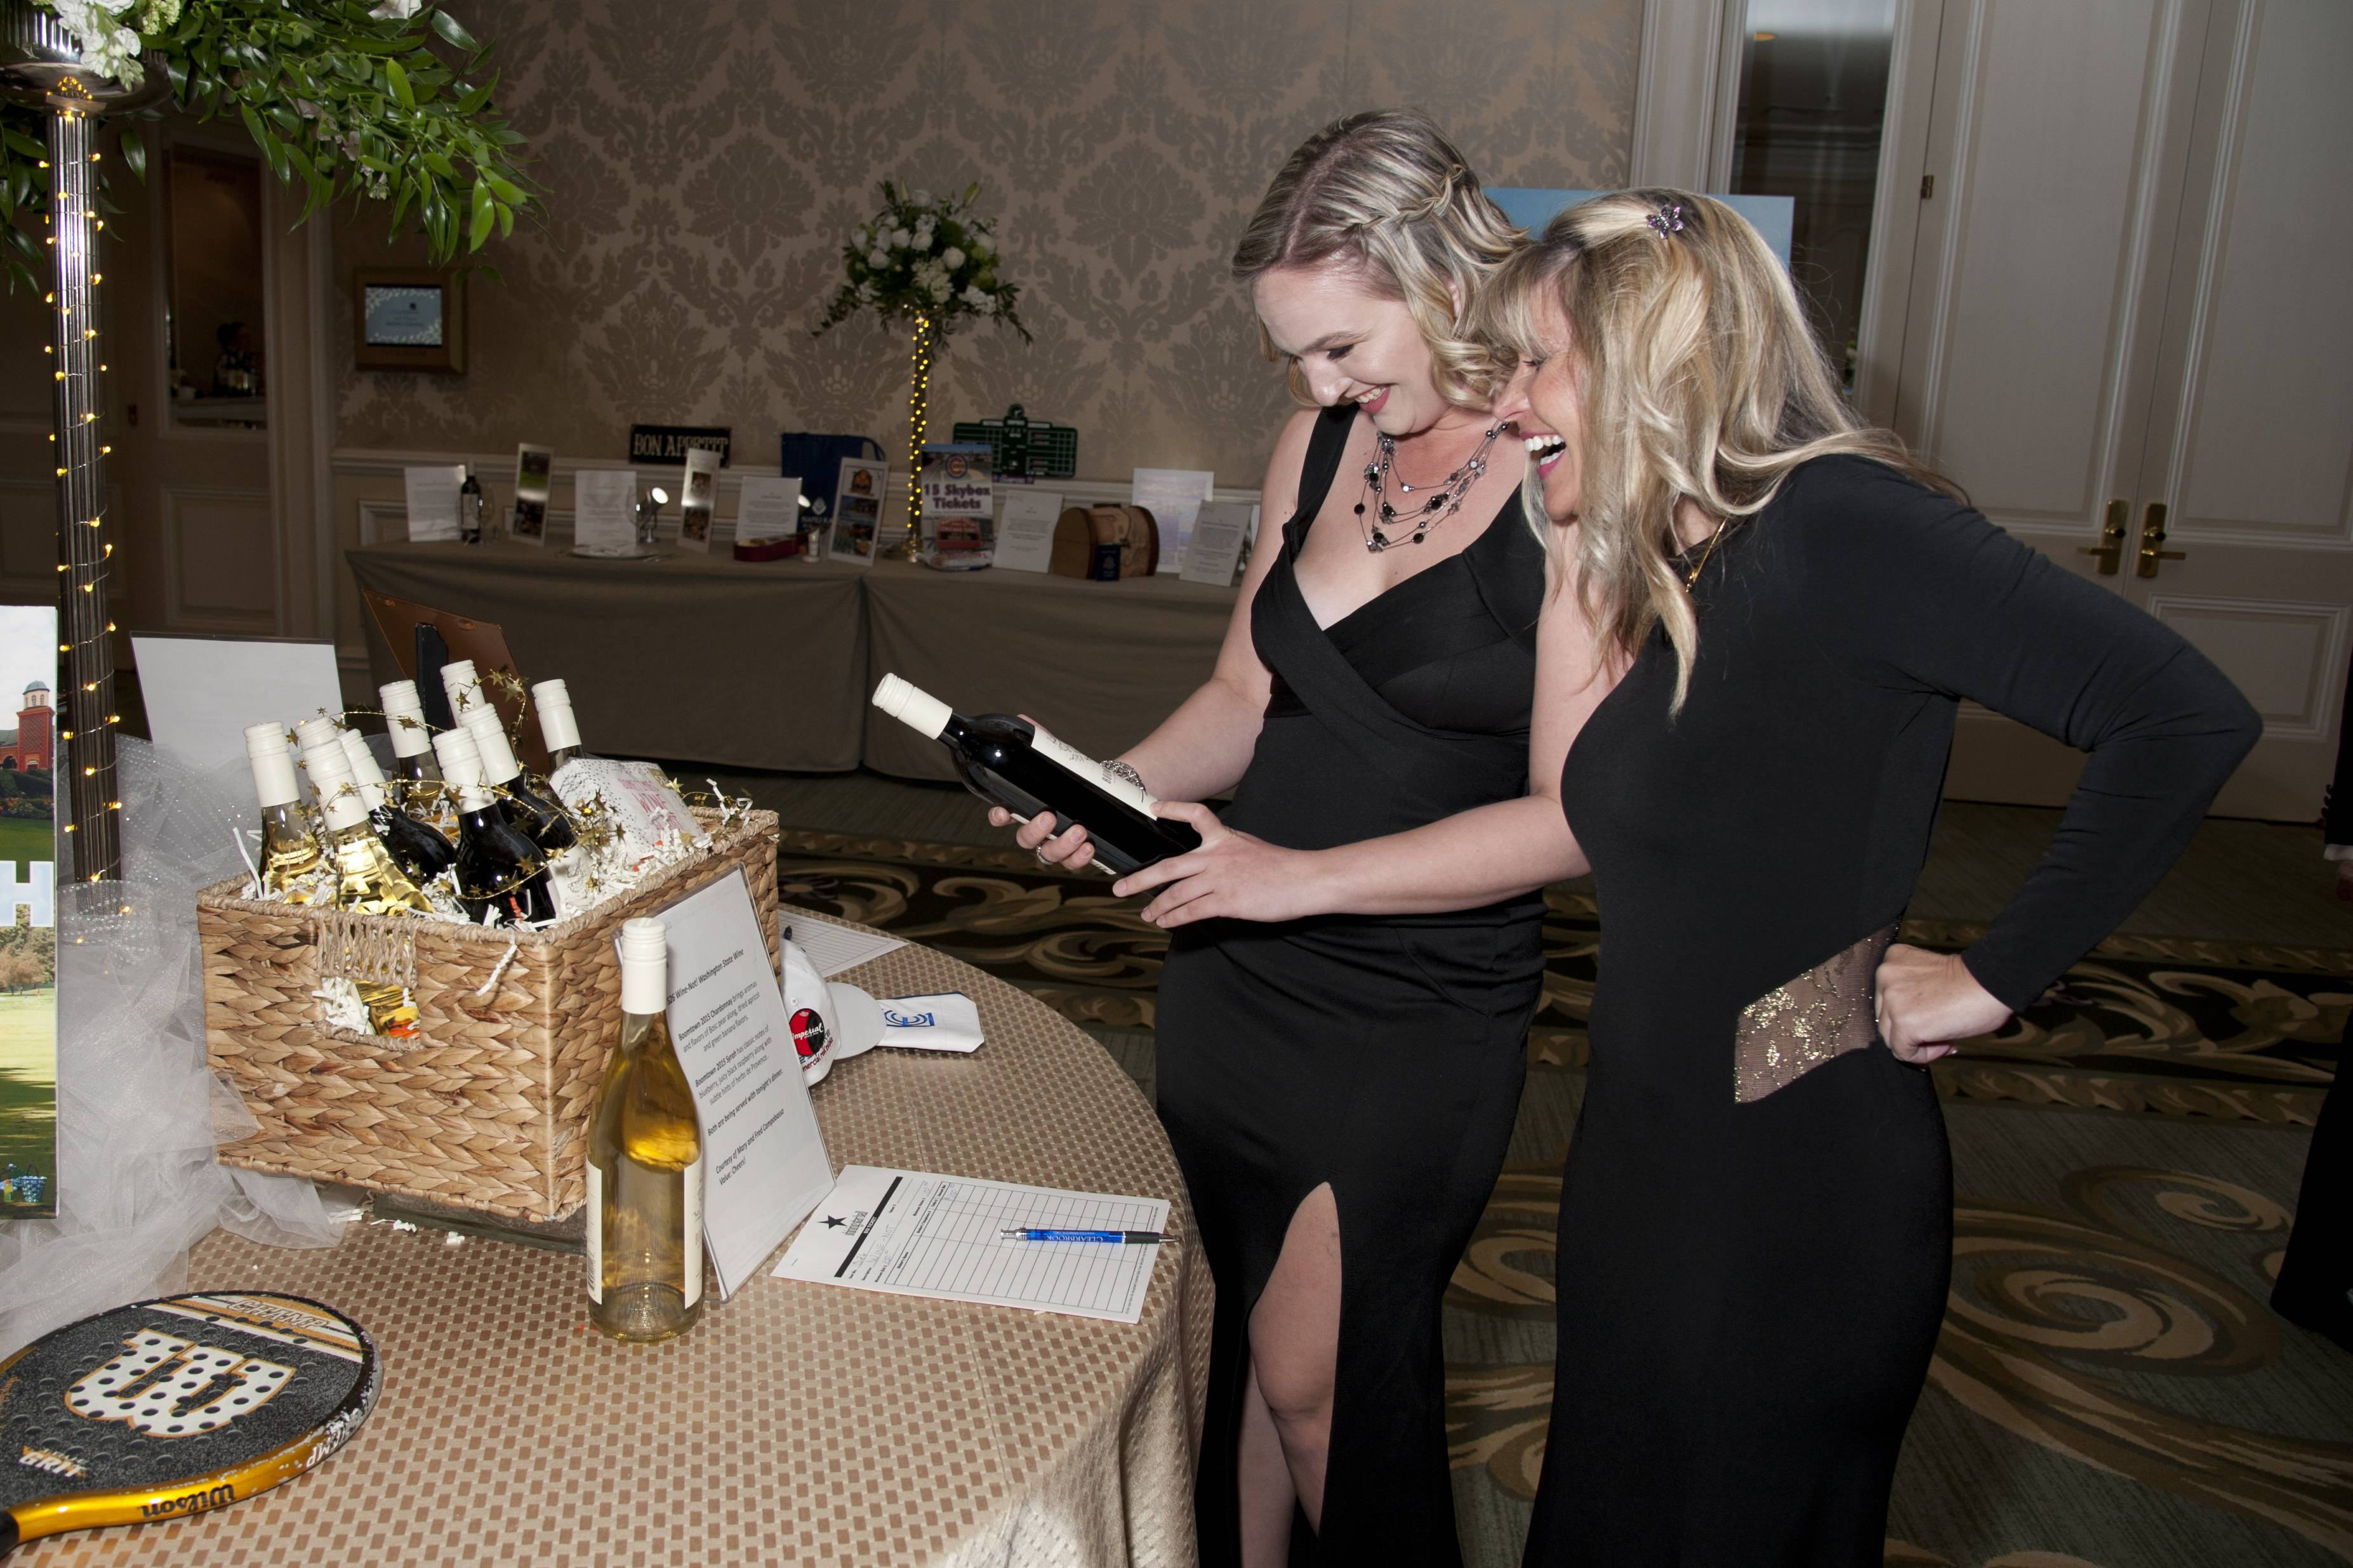 COURTESY OF ROBERT CARLBrooke Wils and Laura Warren look at silent auction items during the Clearbrook Event at the Four Seasons Hotel Chicago on Friday, April 27, 2018.